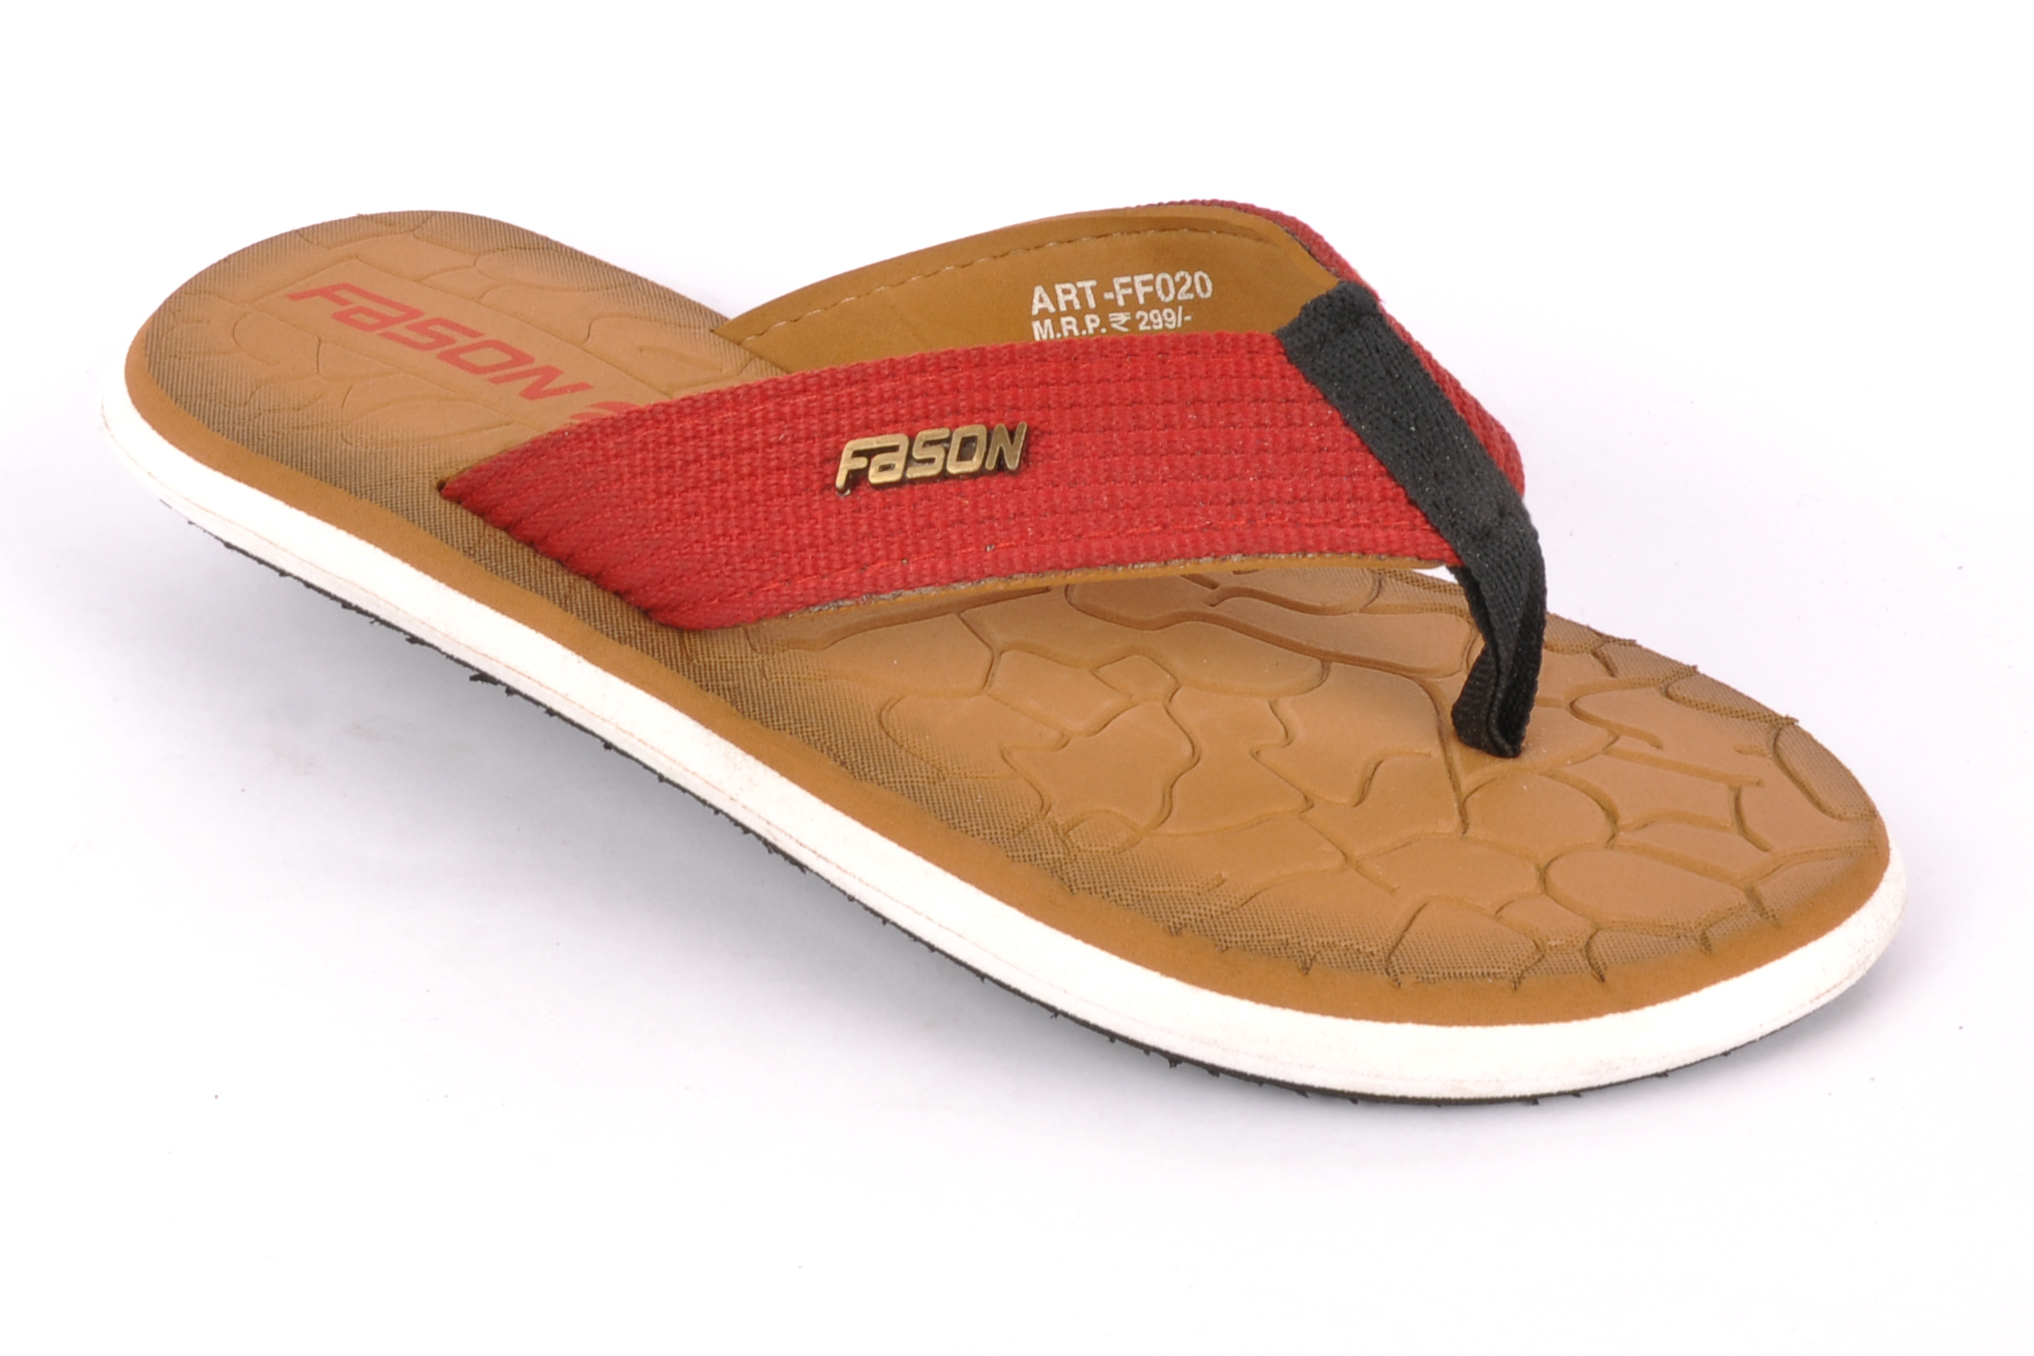 Tan Red Flip Flop slipper